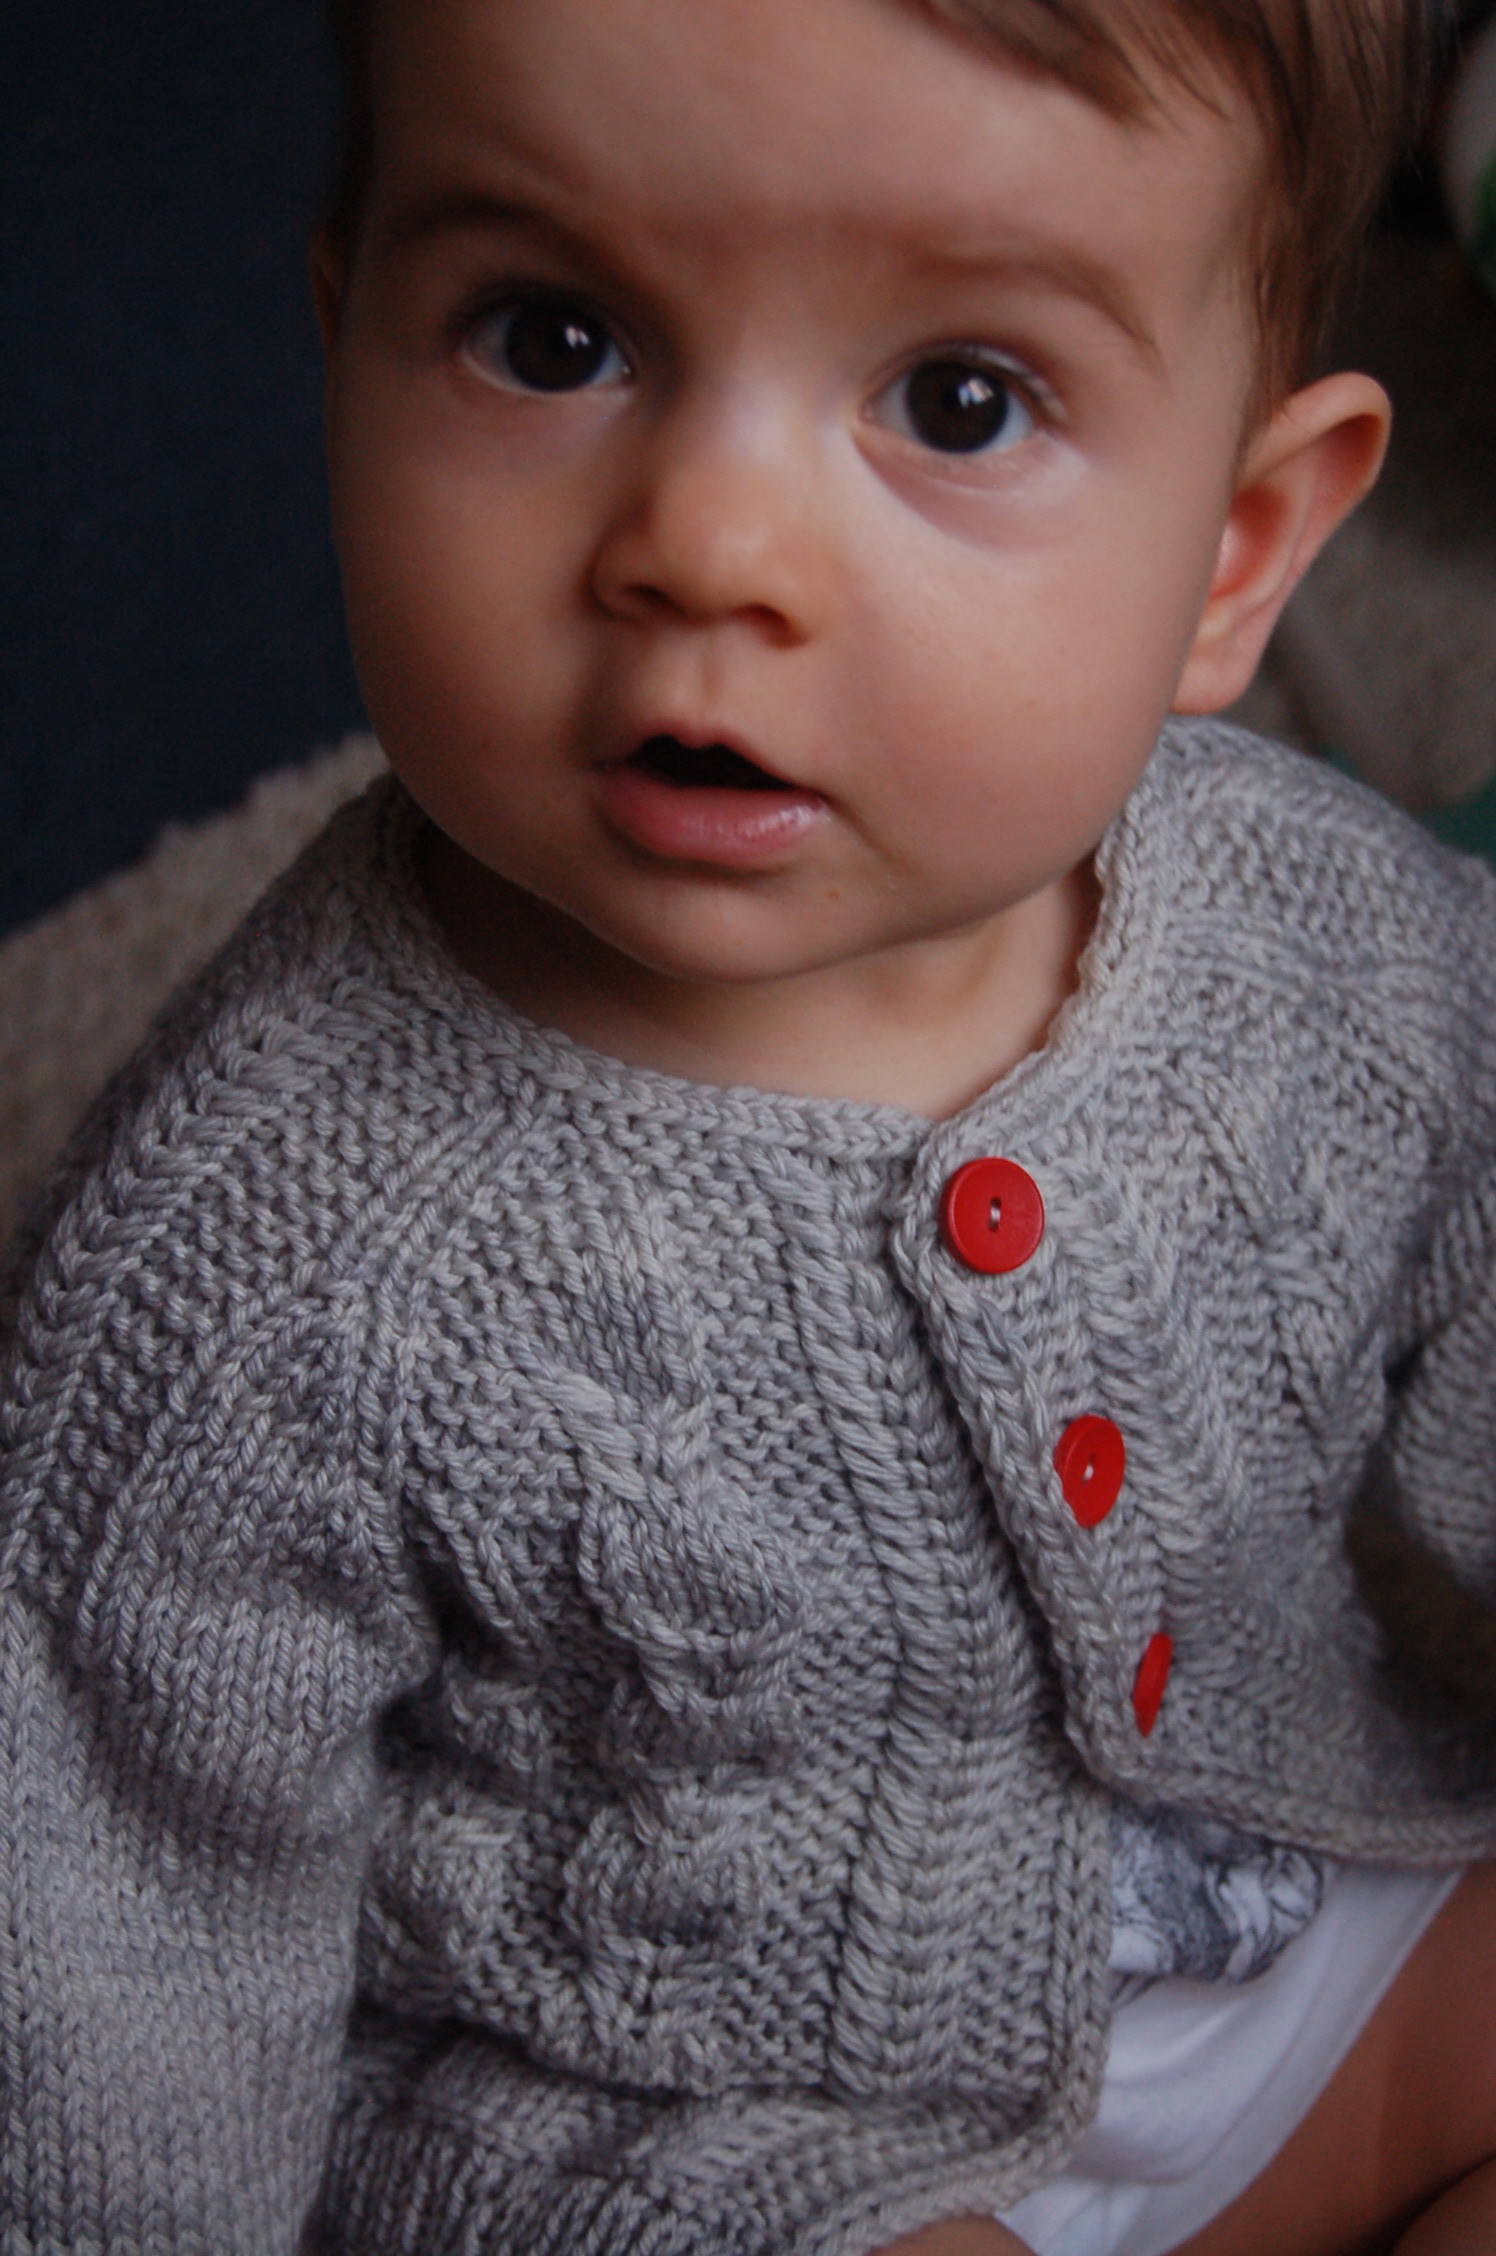 Silverfox unisex cable cardigan - knitting pattern